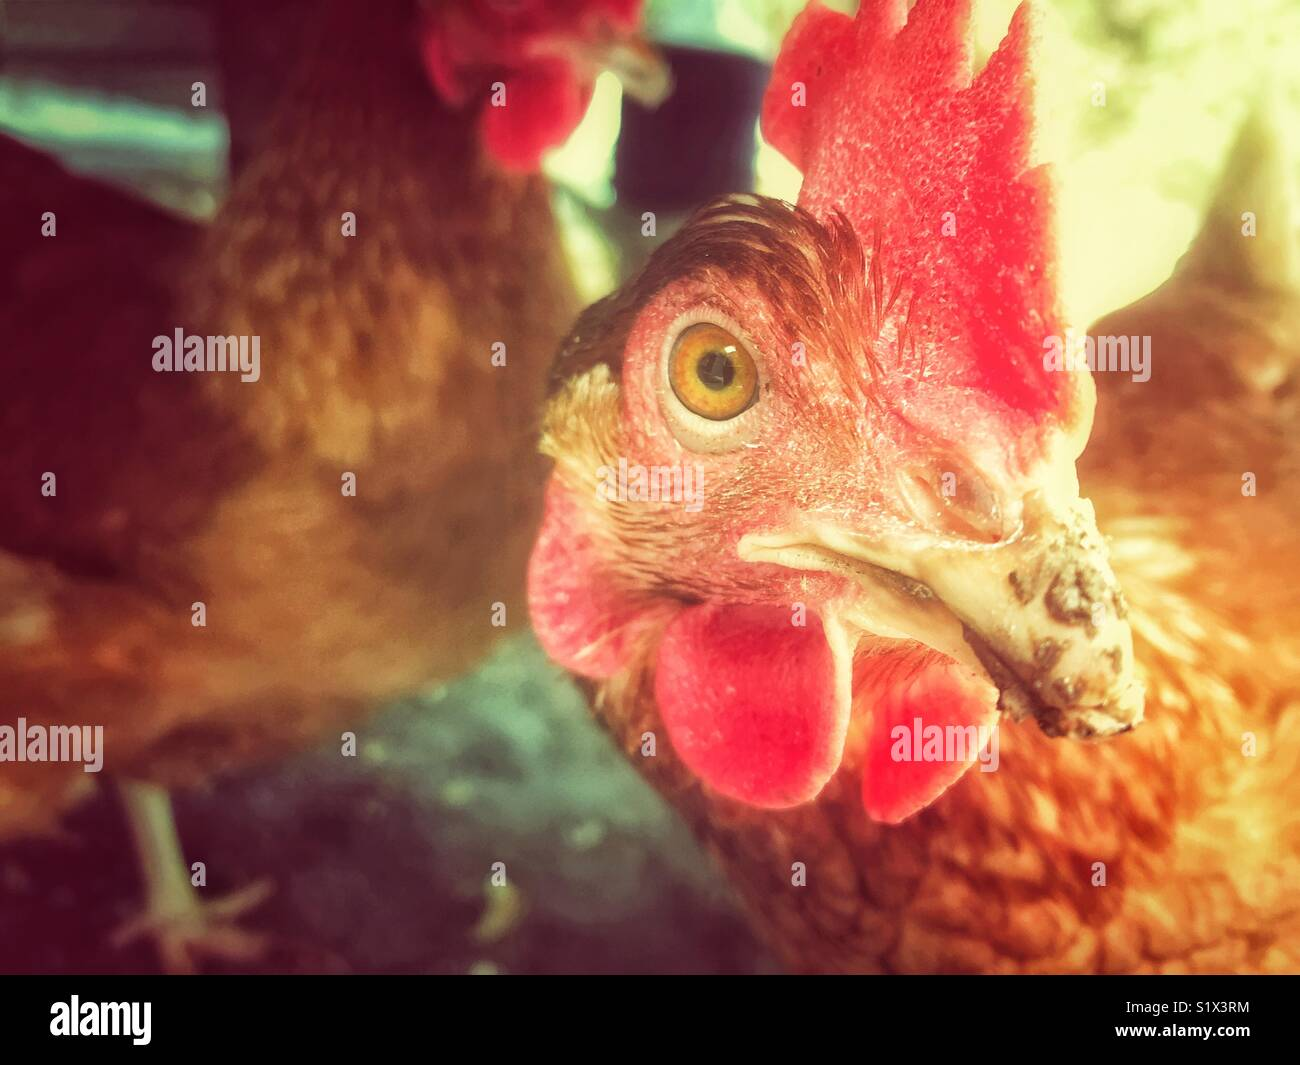 Rhode Island Red chicken closeup with chickens and warm light in background - Stock Image